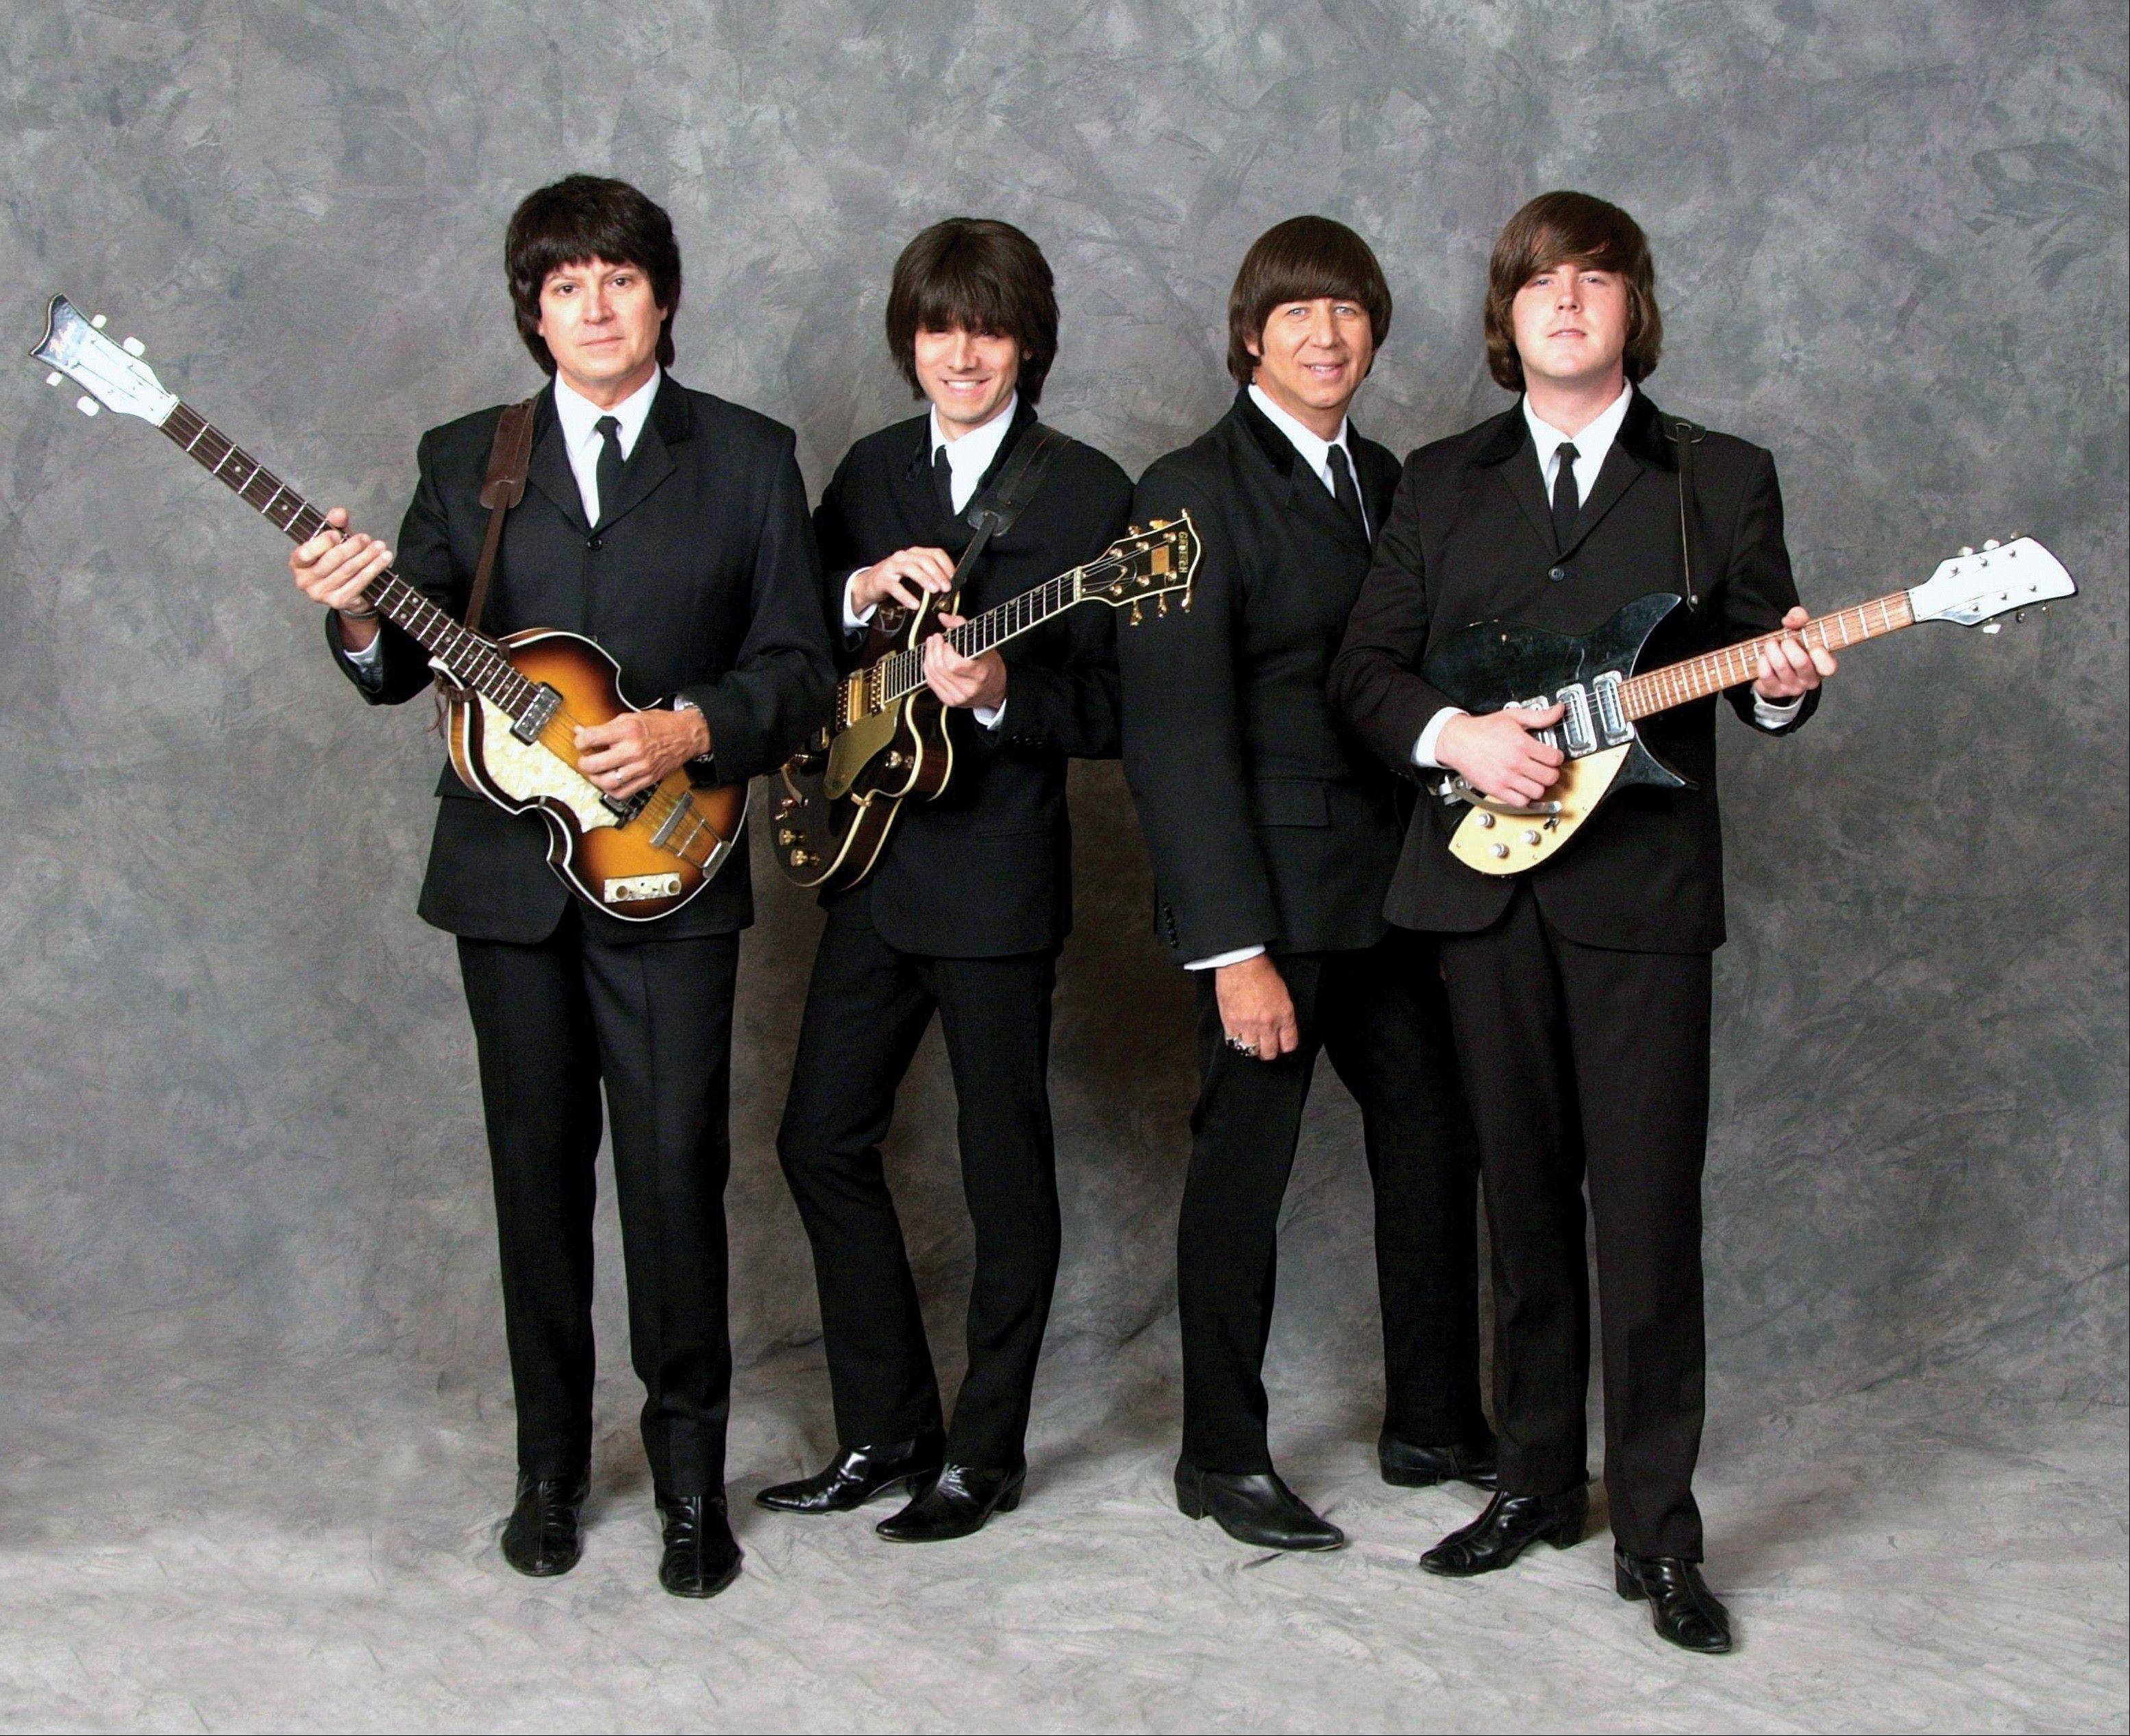 Beatles tribute band American English is set to perform at Pheasant Run Resort in St. Charles.